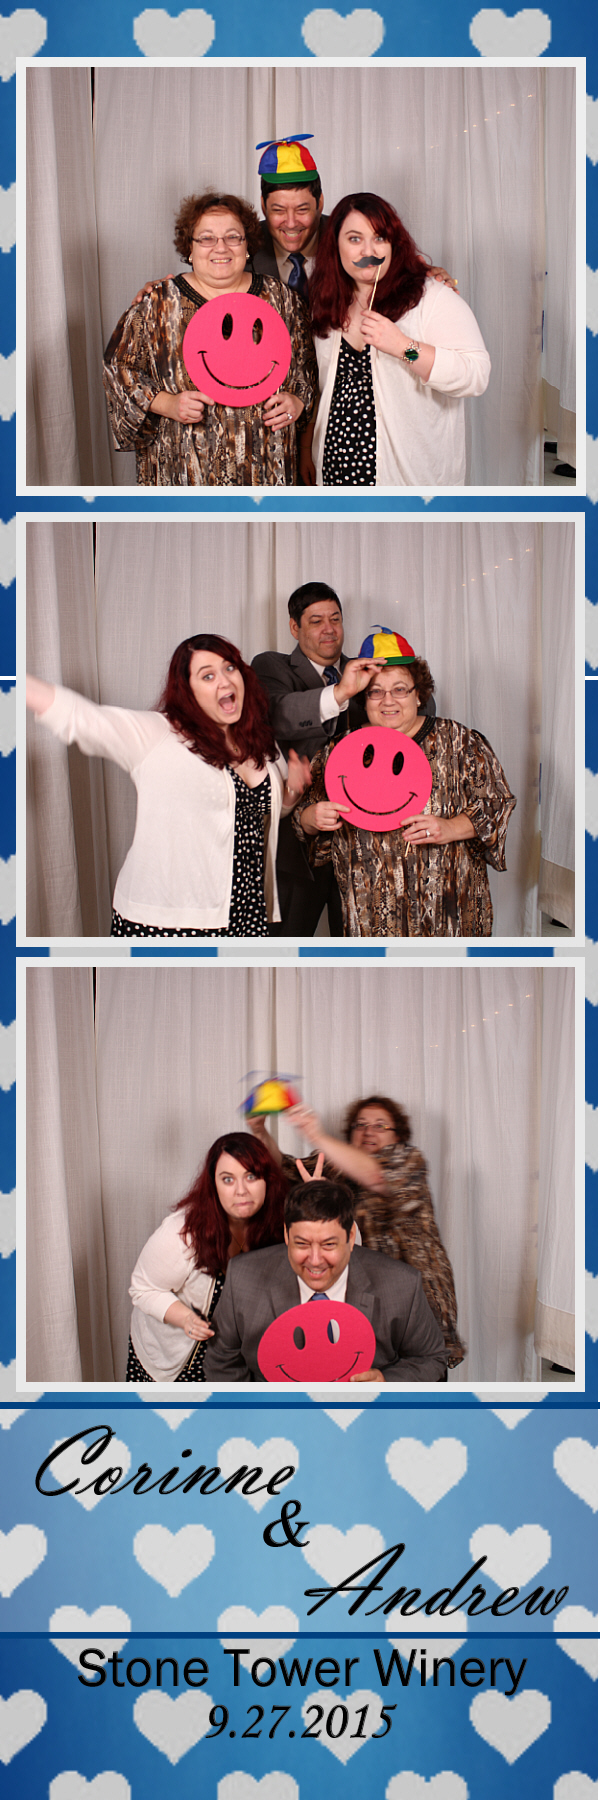 Guest House Events Photo Booth C&A (12).jpg